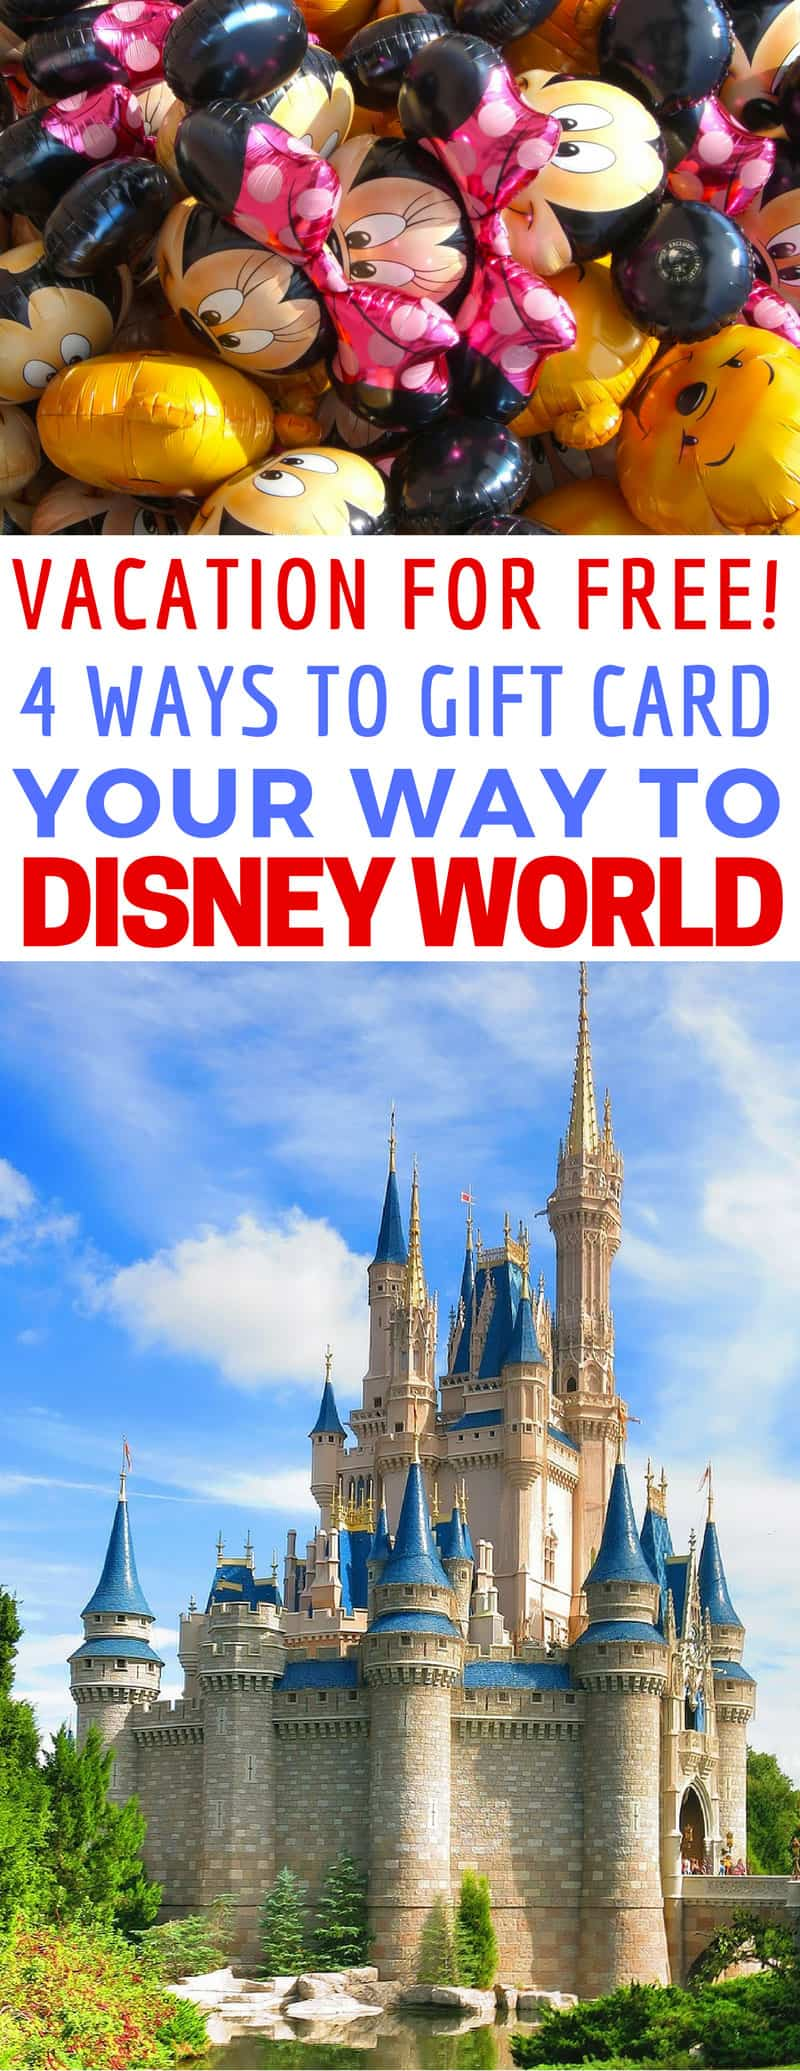 loving these super easy way to earn gift cards to pay for my Disney vacation! Thanks for sharing!